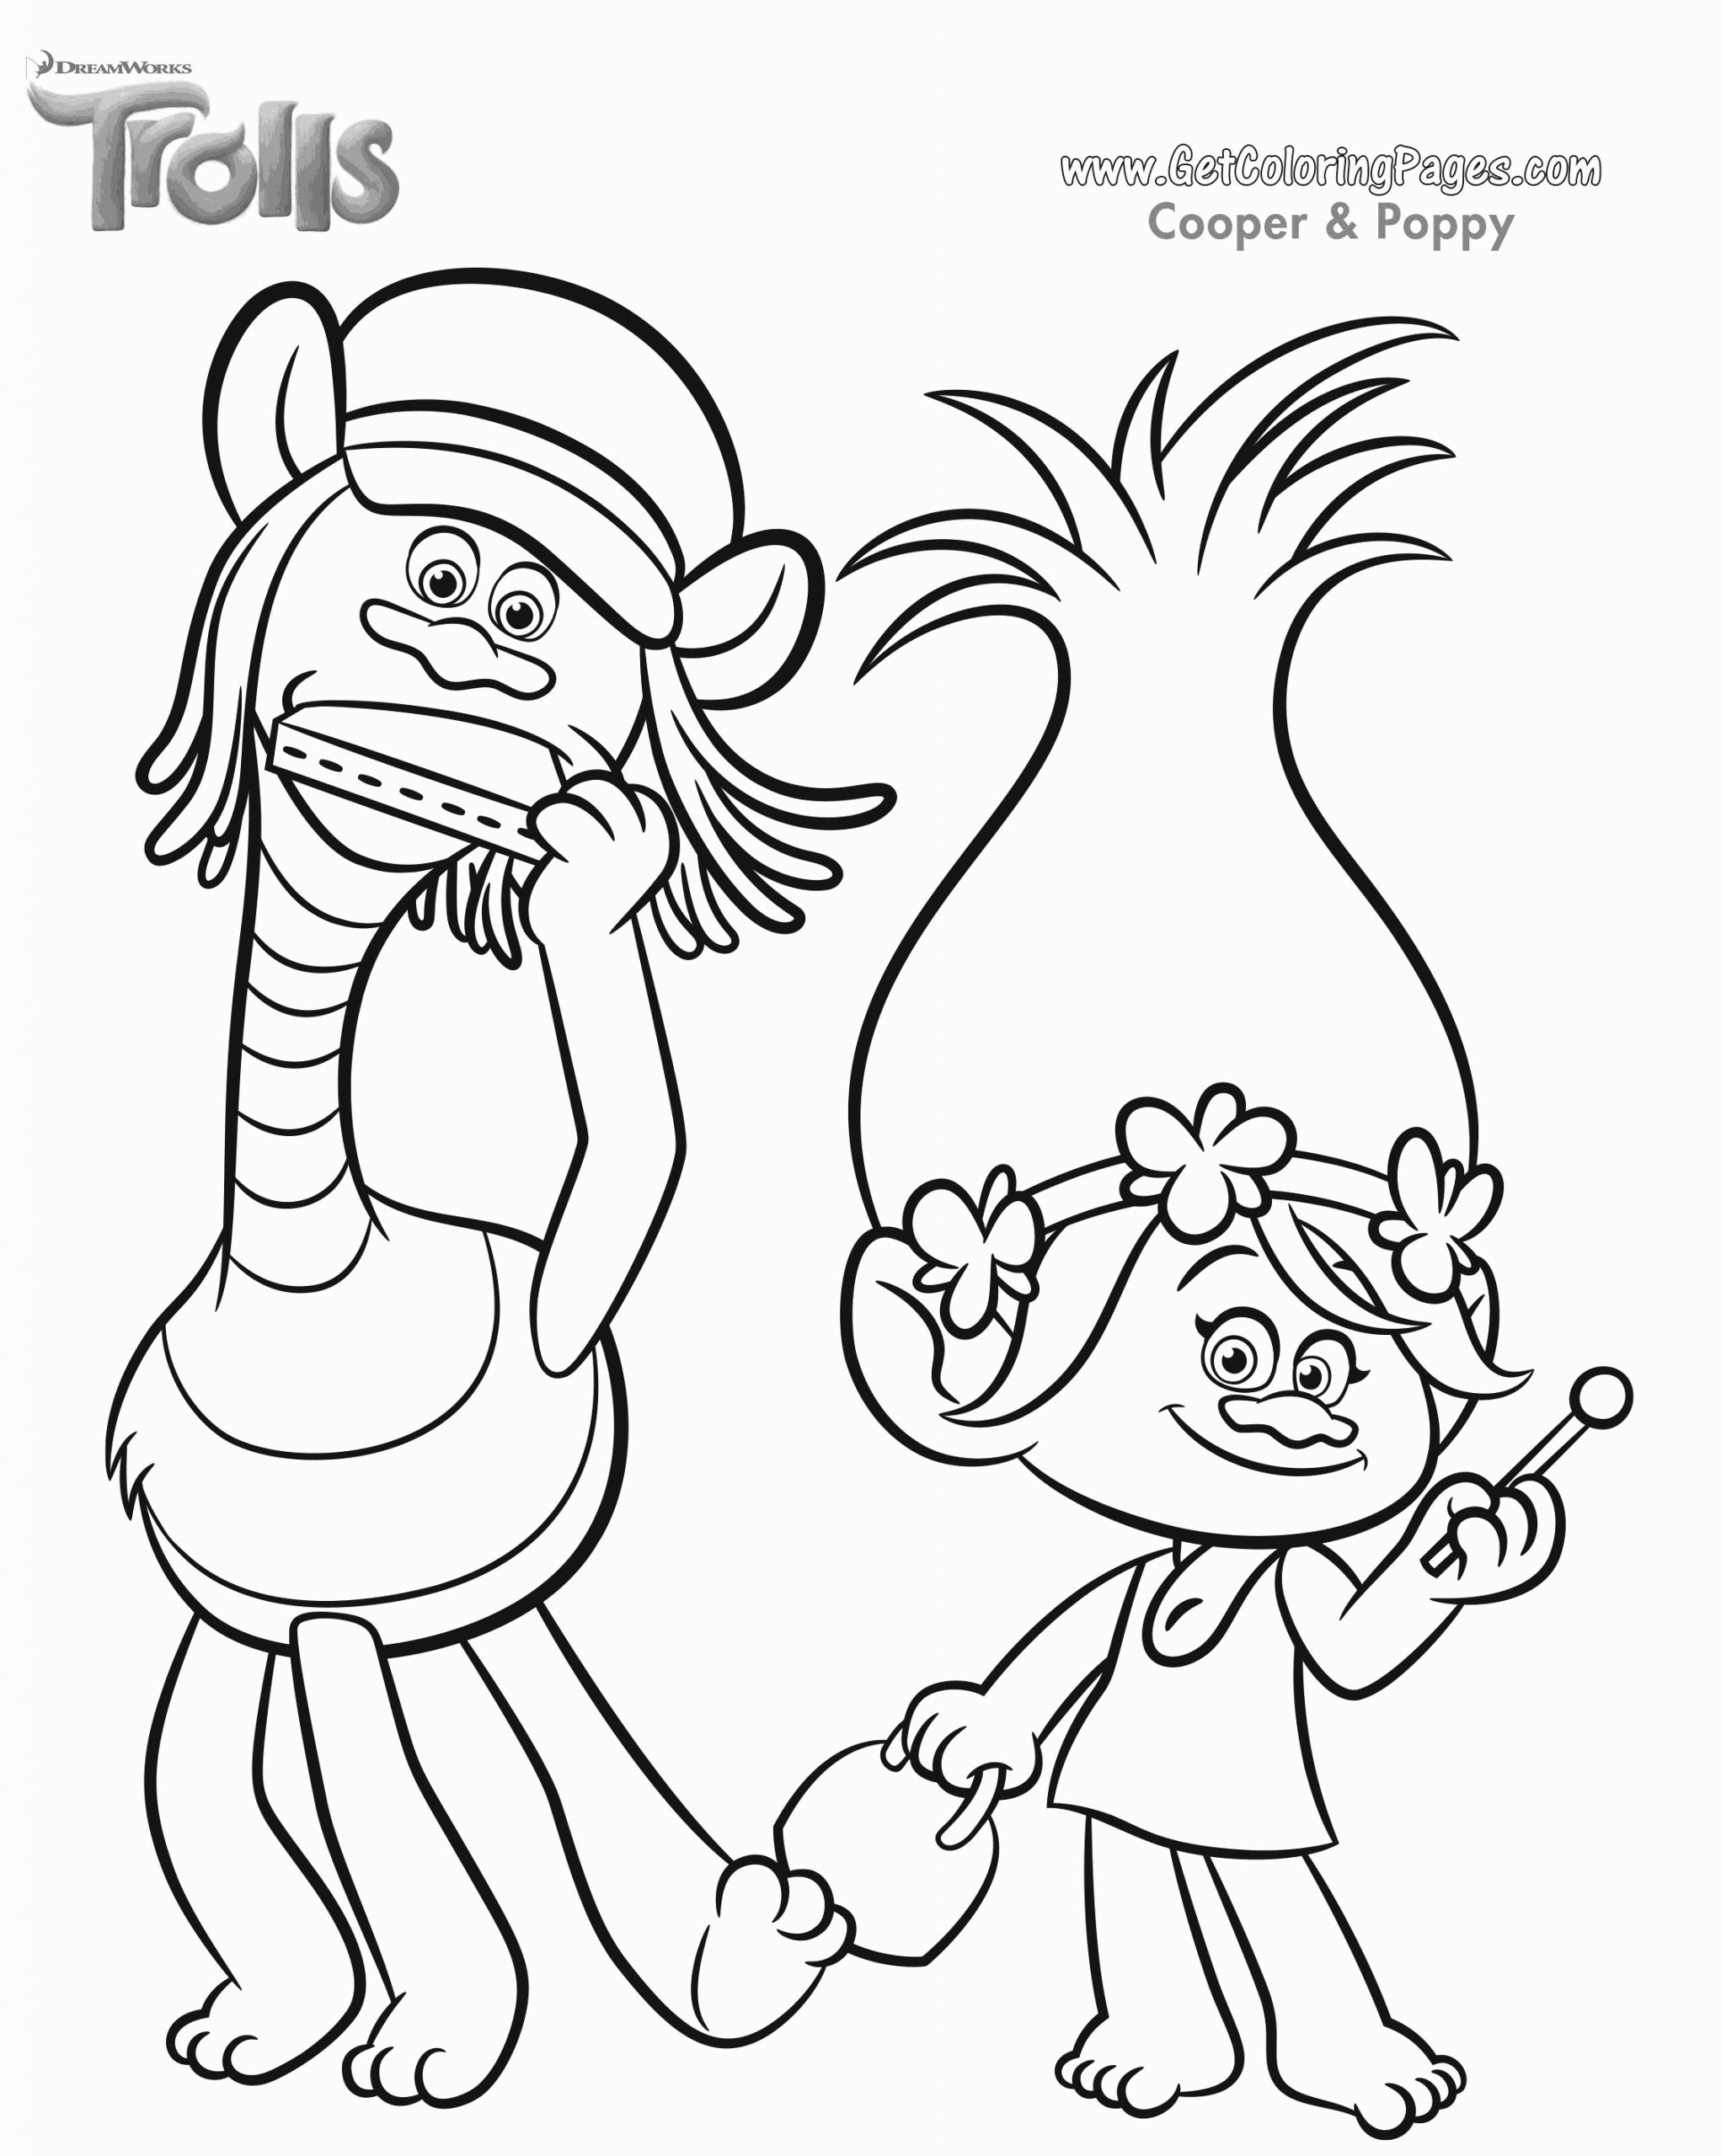 Trolls Coloring Pages To Download And Print For Free Poppy Coloring Page Coloring Pages Cartoon Coloring Pages